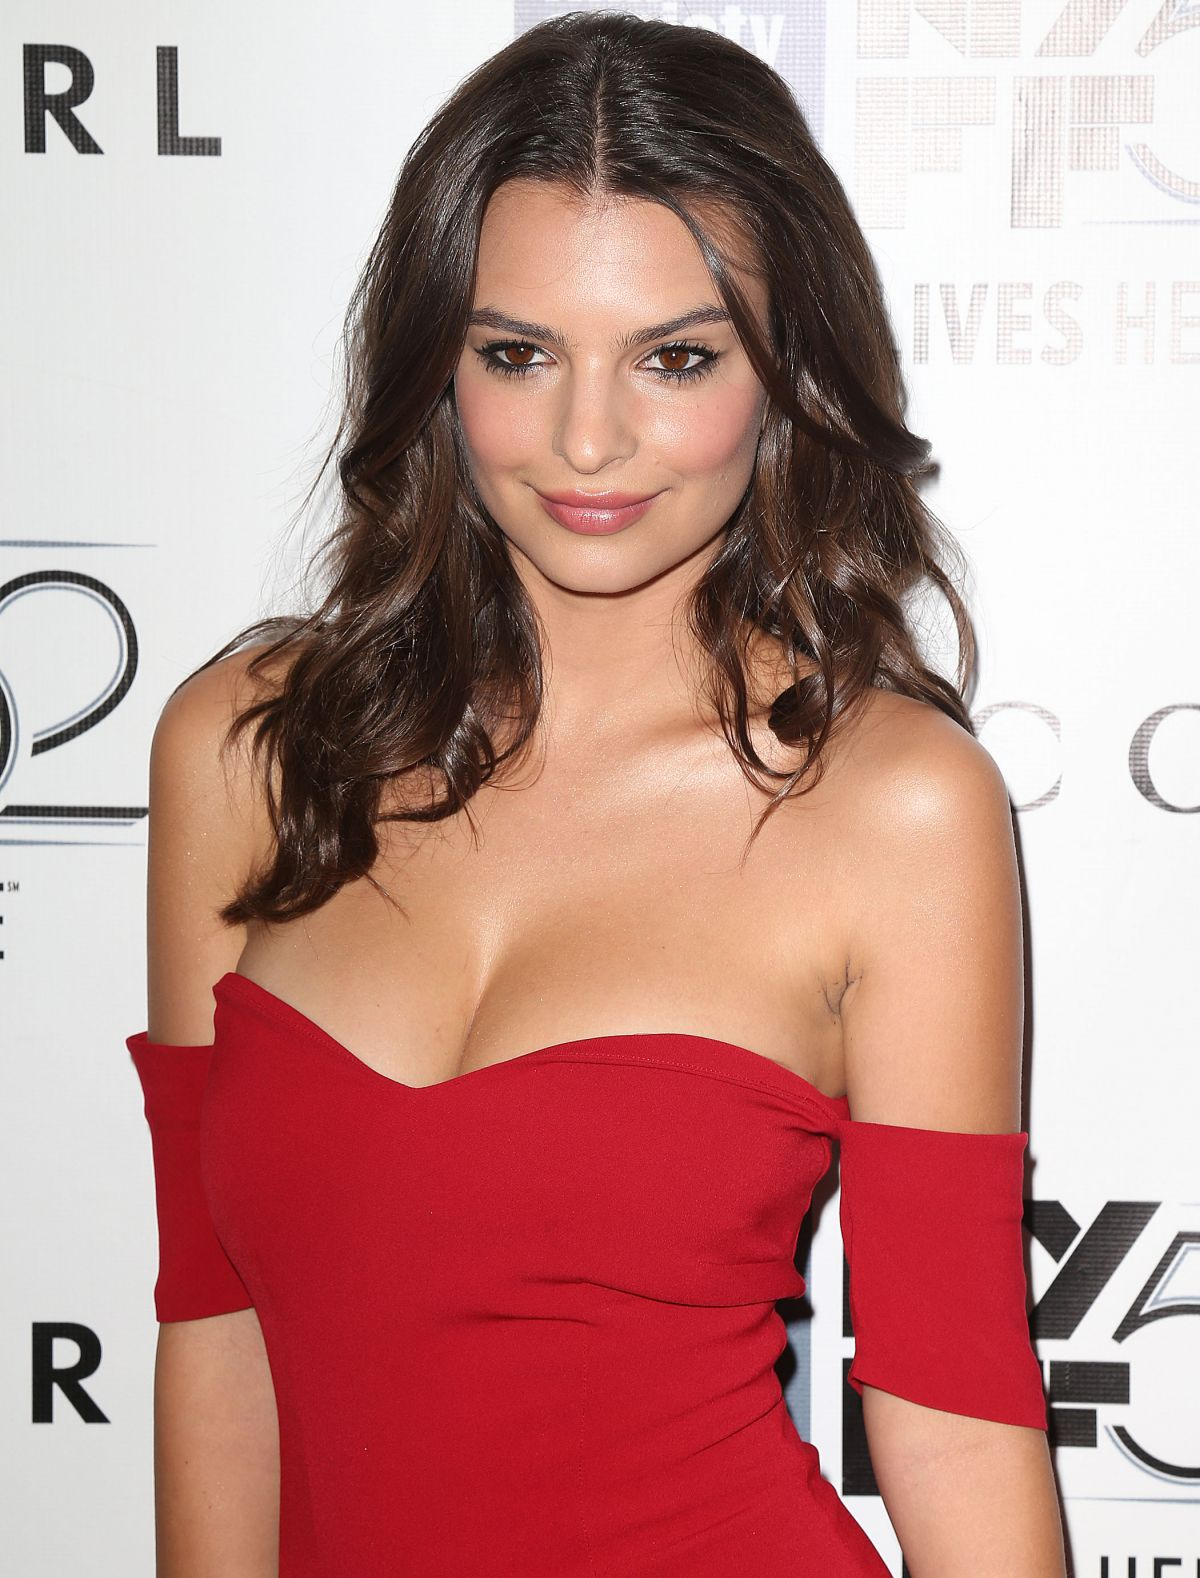 EMILY RATAJKOWSKI at Gone Girl Premiere in New York  HawtCelebs